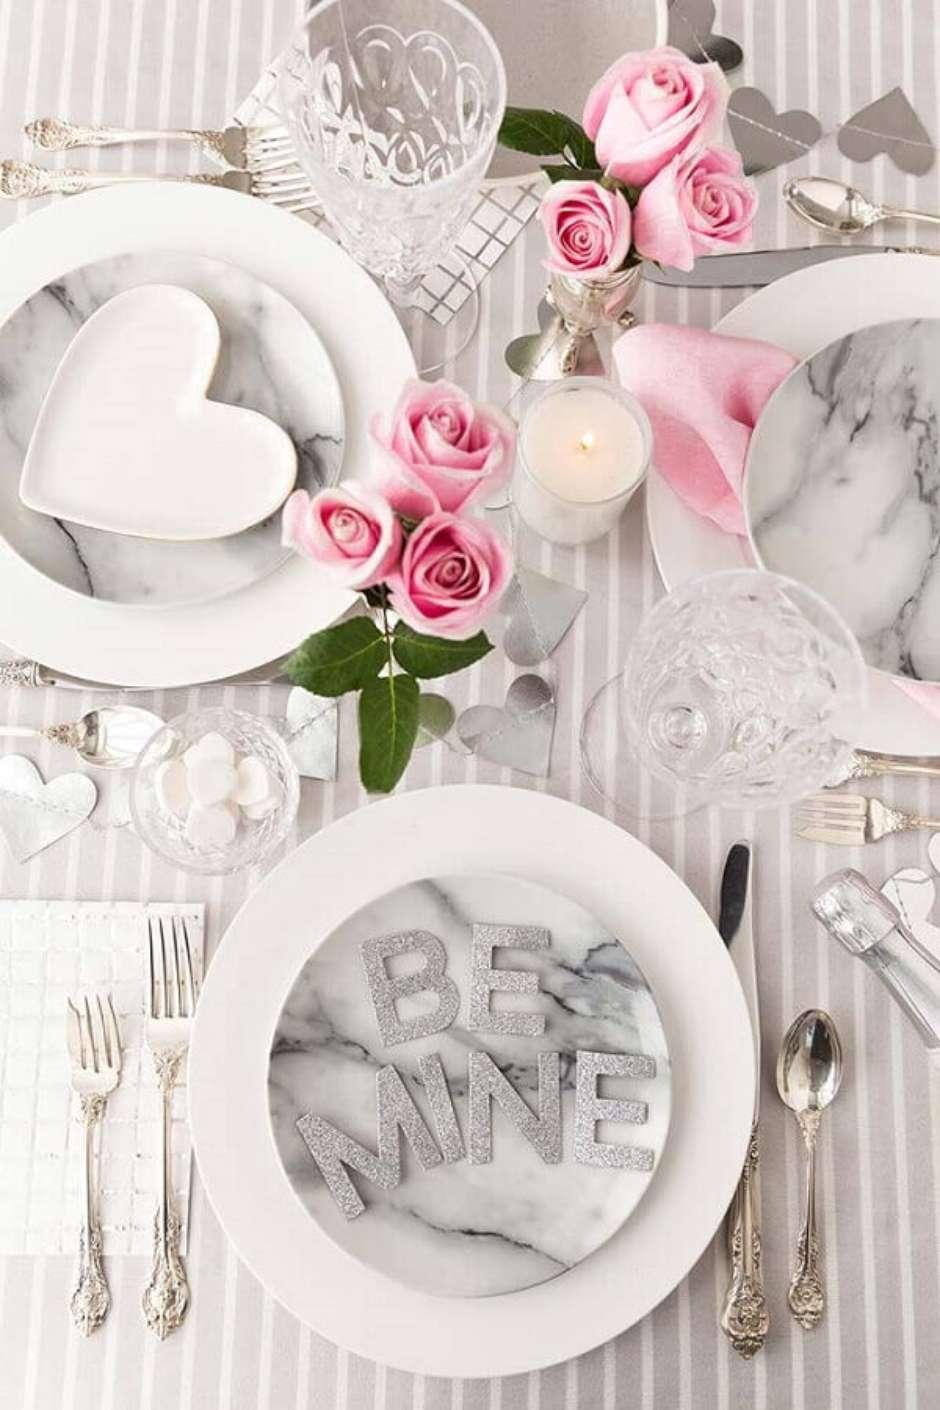 Table set for romantic meal